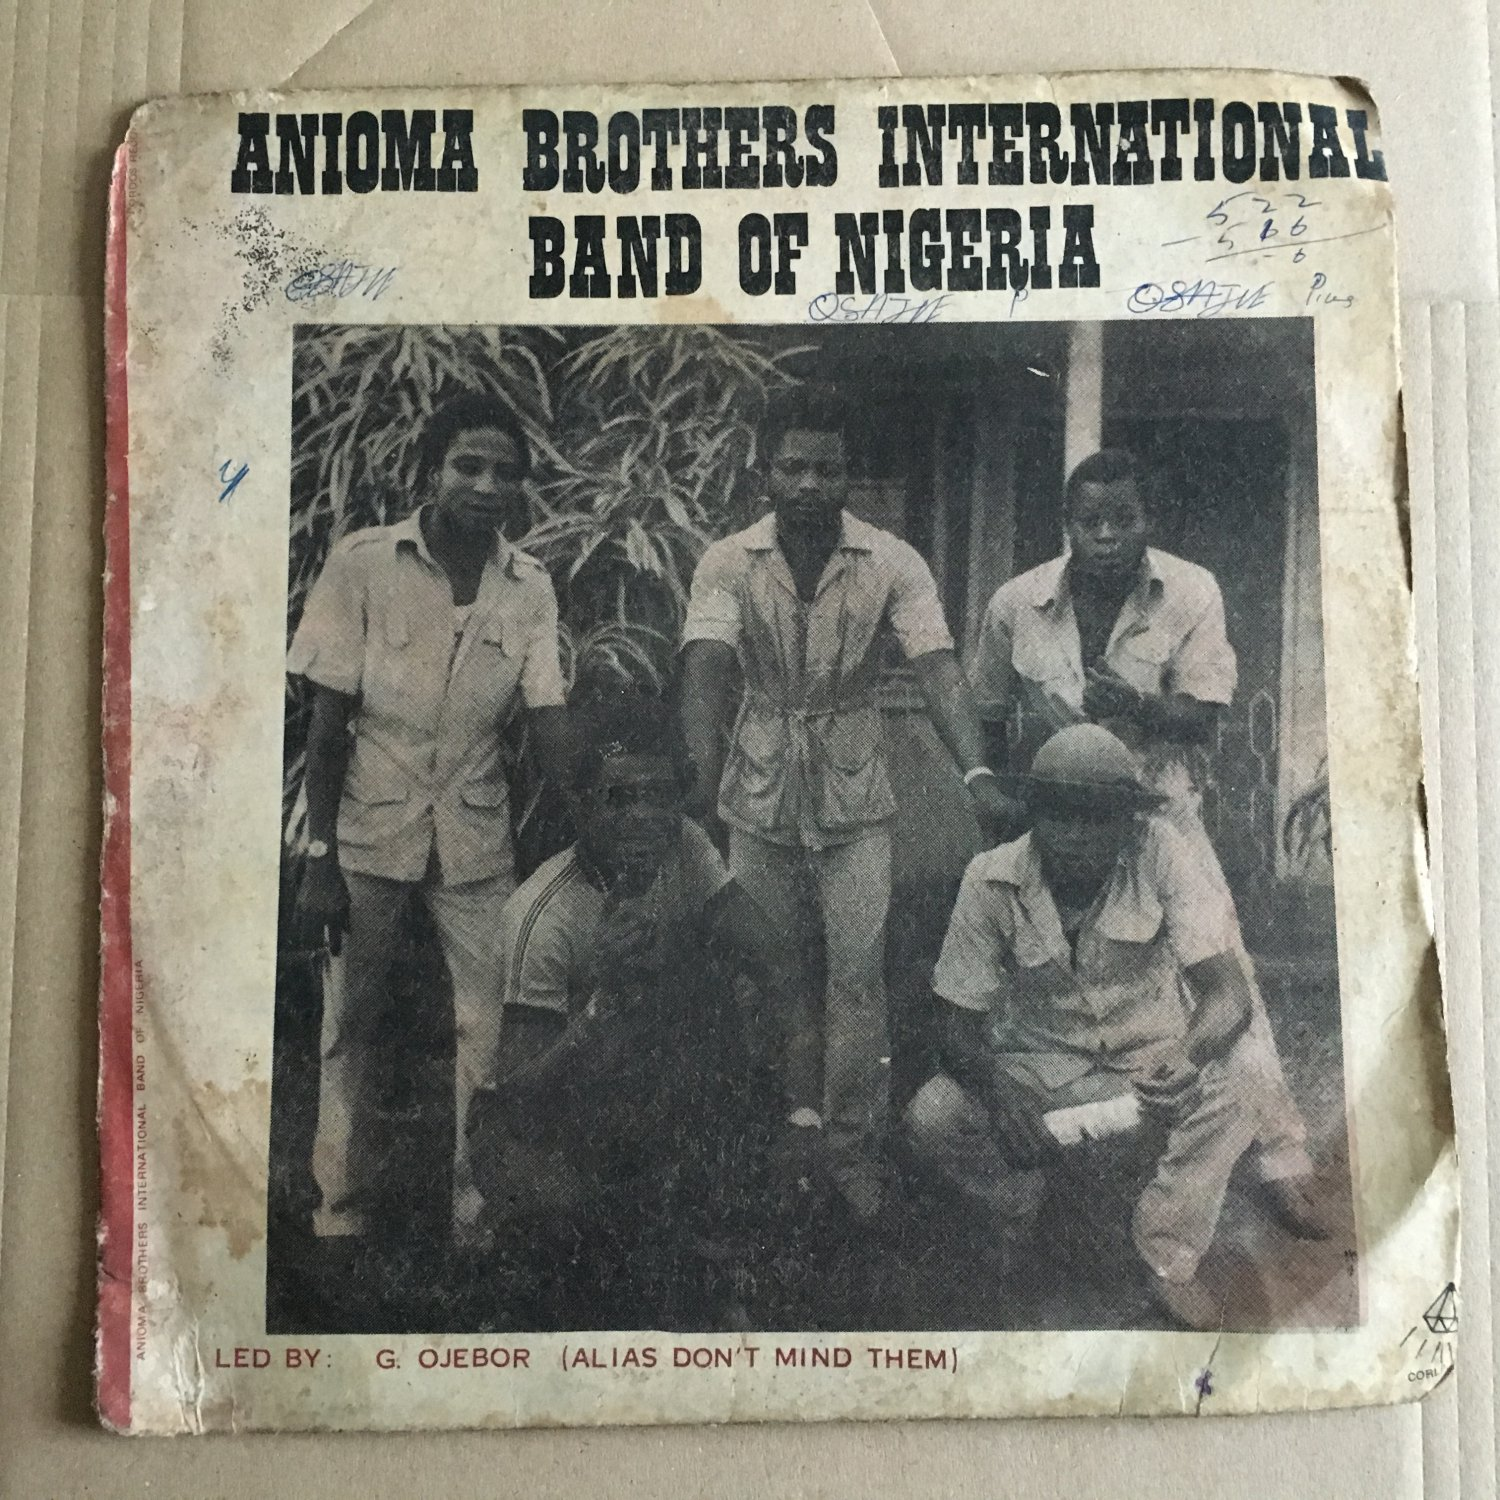 ANIOMA BROTHERS INT. BAND LP same NIGERIA mp3 LISTEN